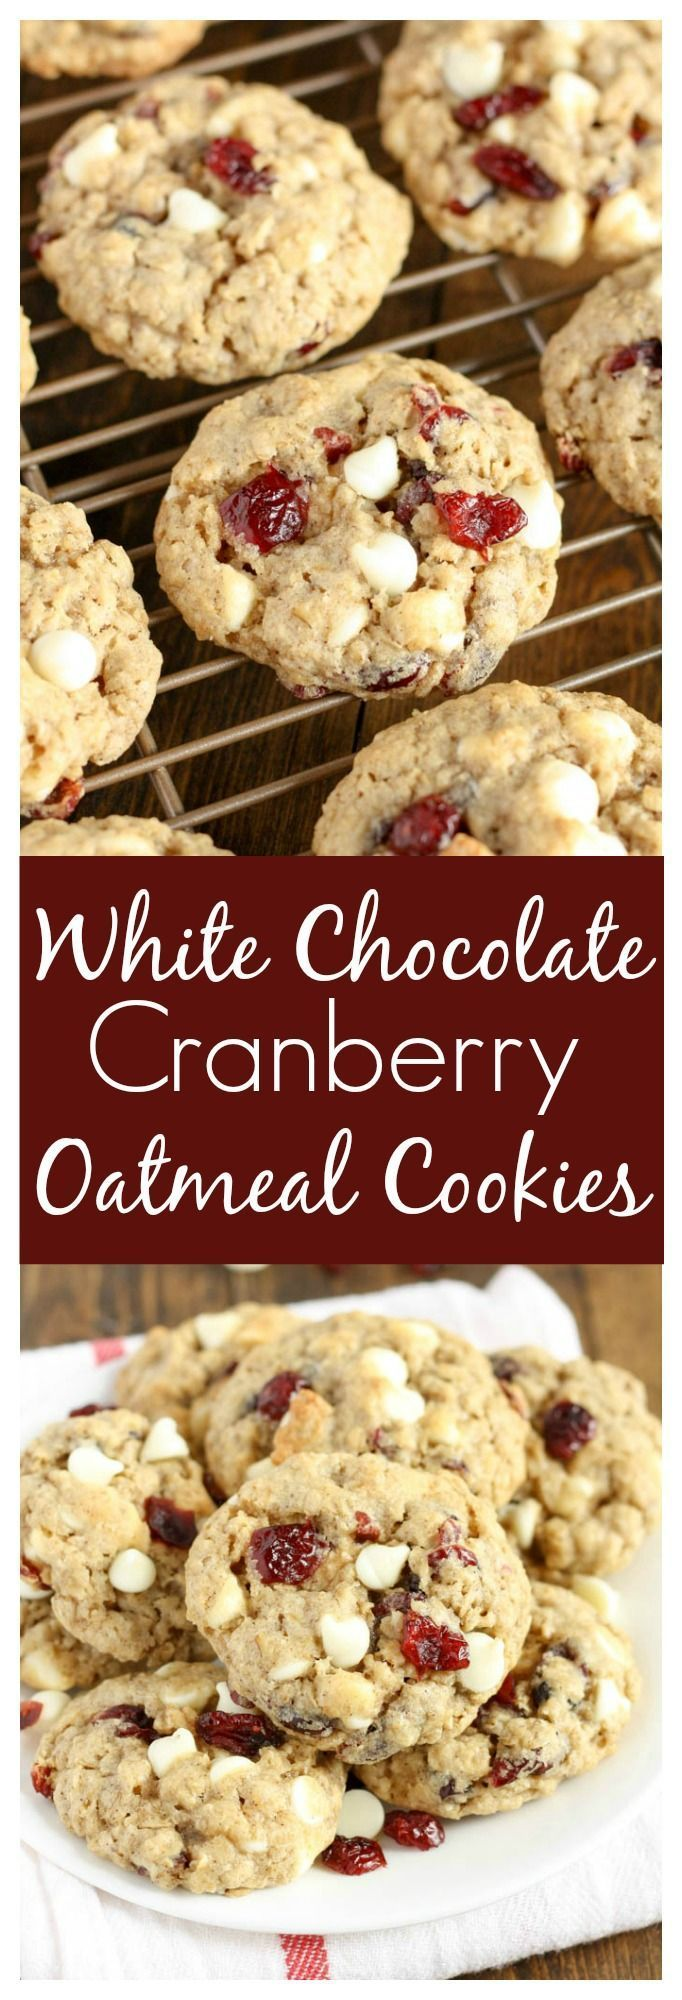 ... Cranberry Oatmeal Cookies on Pinterest | Oatmeal, Cookies and